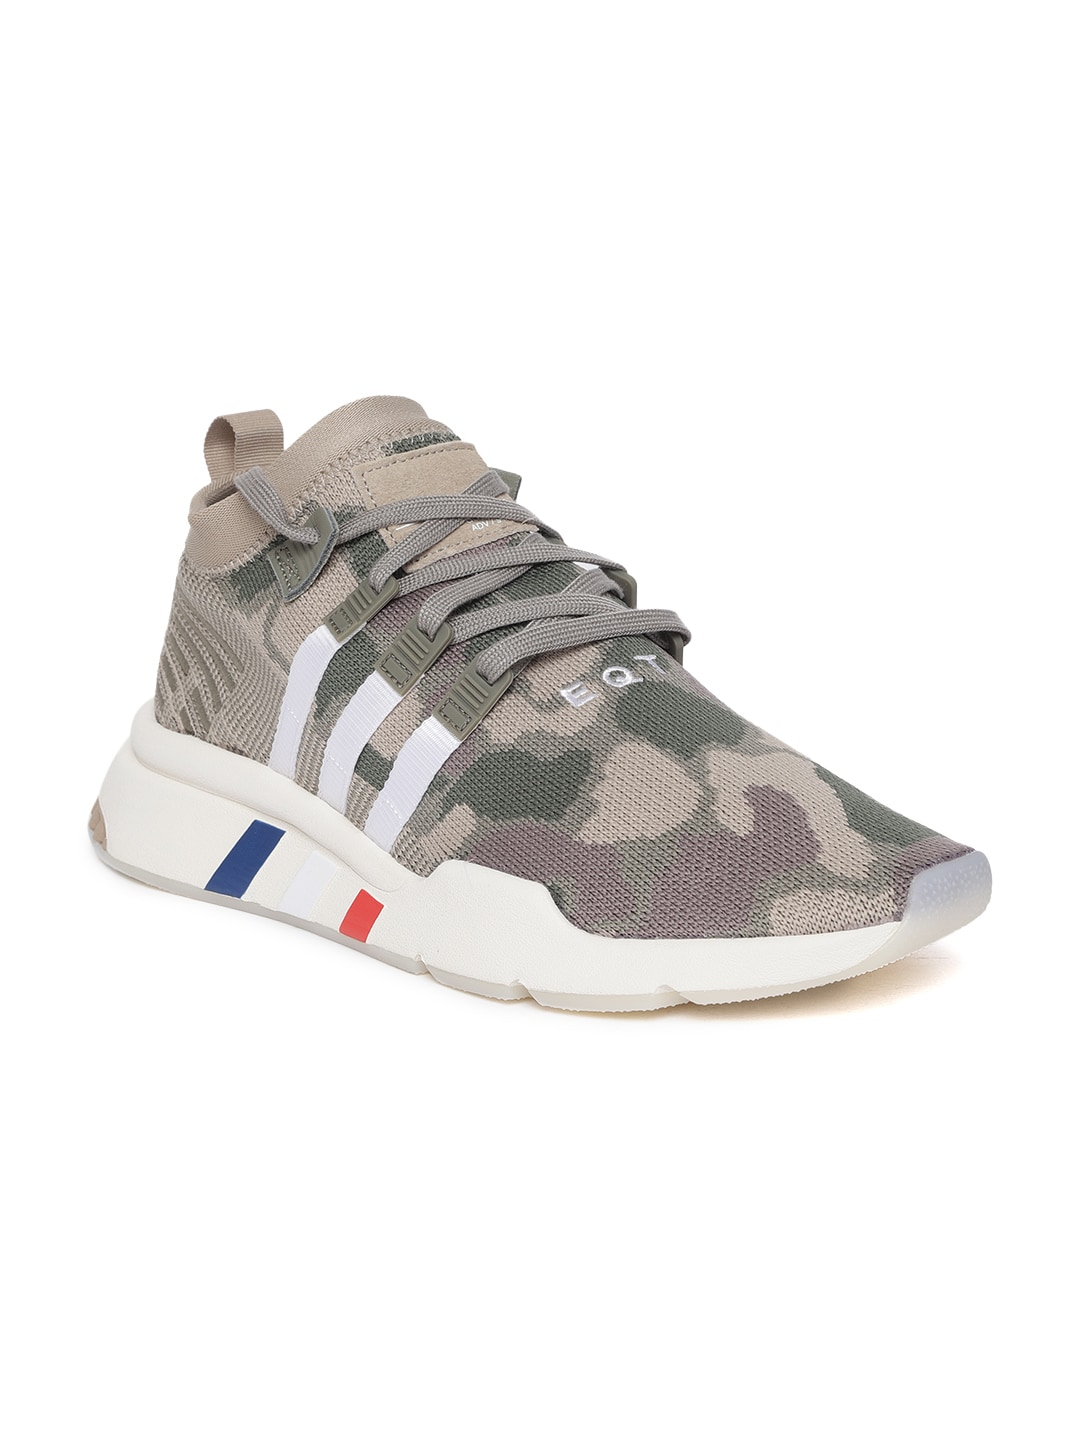 new style c0d1f f6ea7 Sneaker Adidas Eqt - Buy Sneaker Adidas Eqt online in India